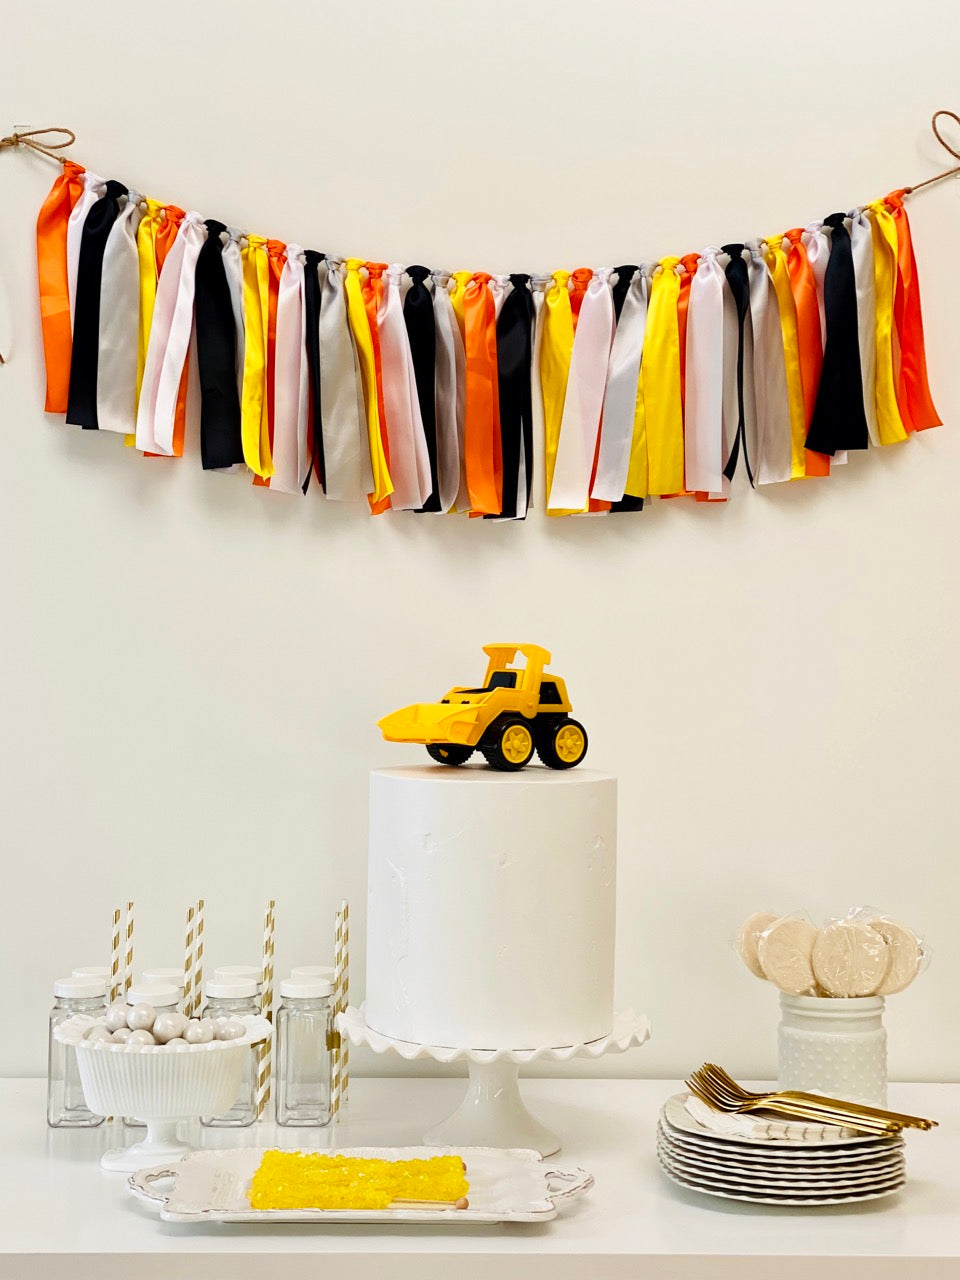 Construction Ribbon Bunting - FREE Shipping